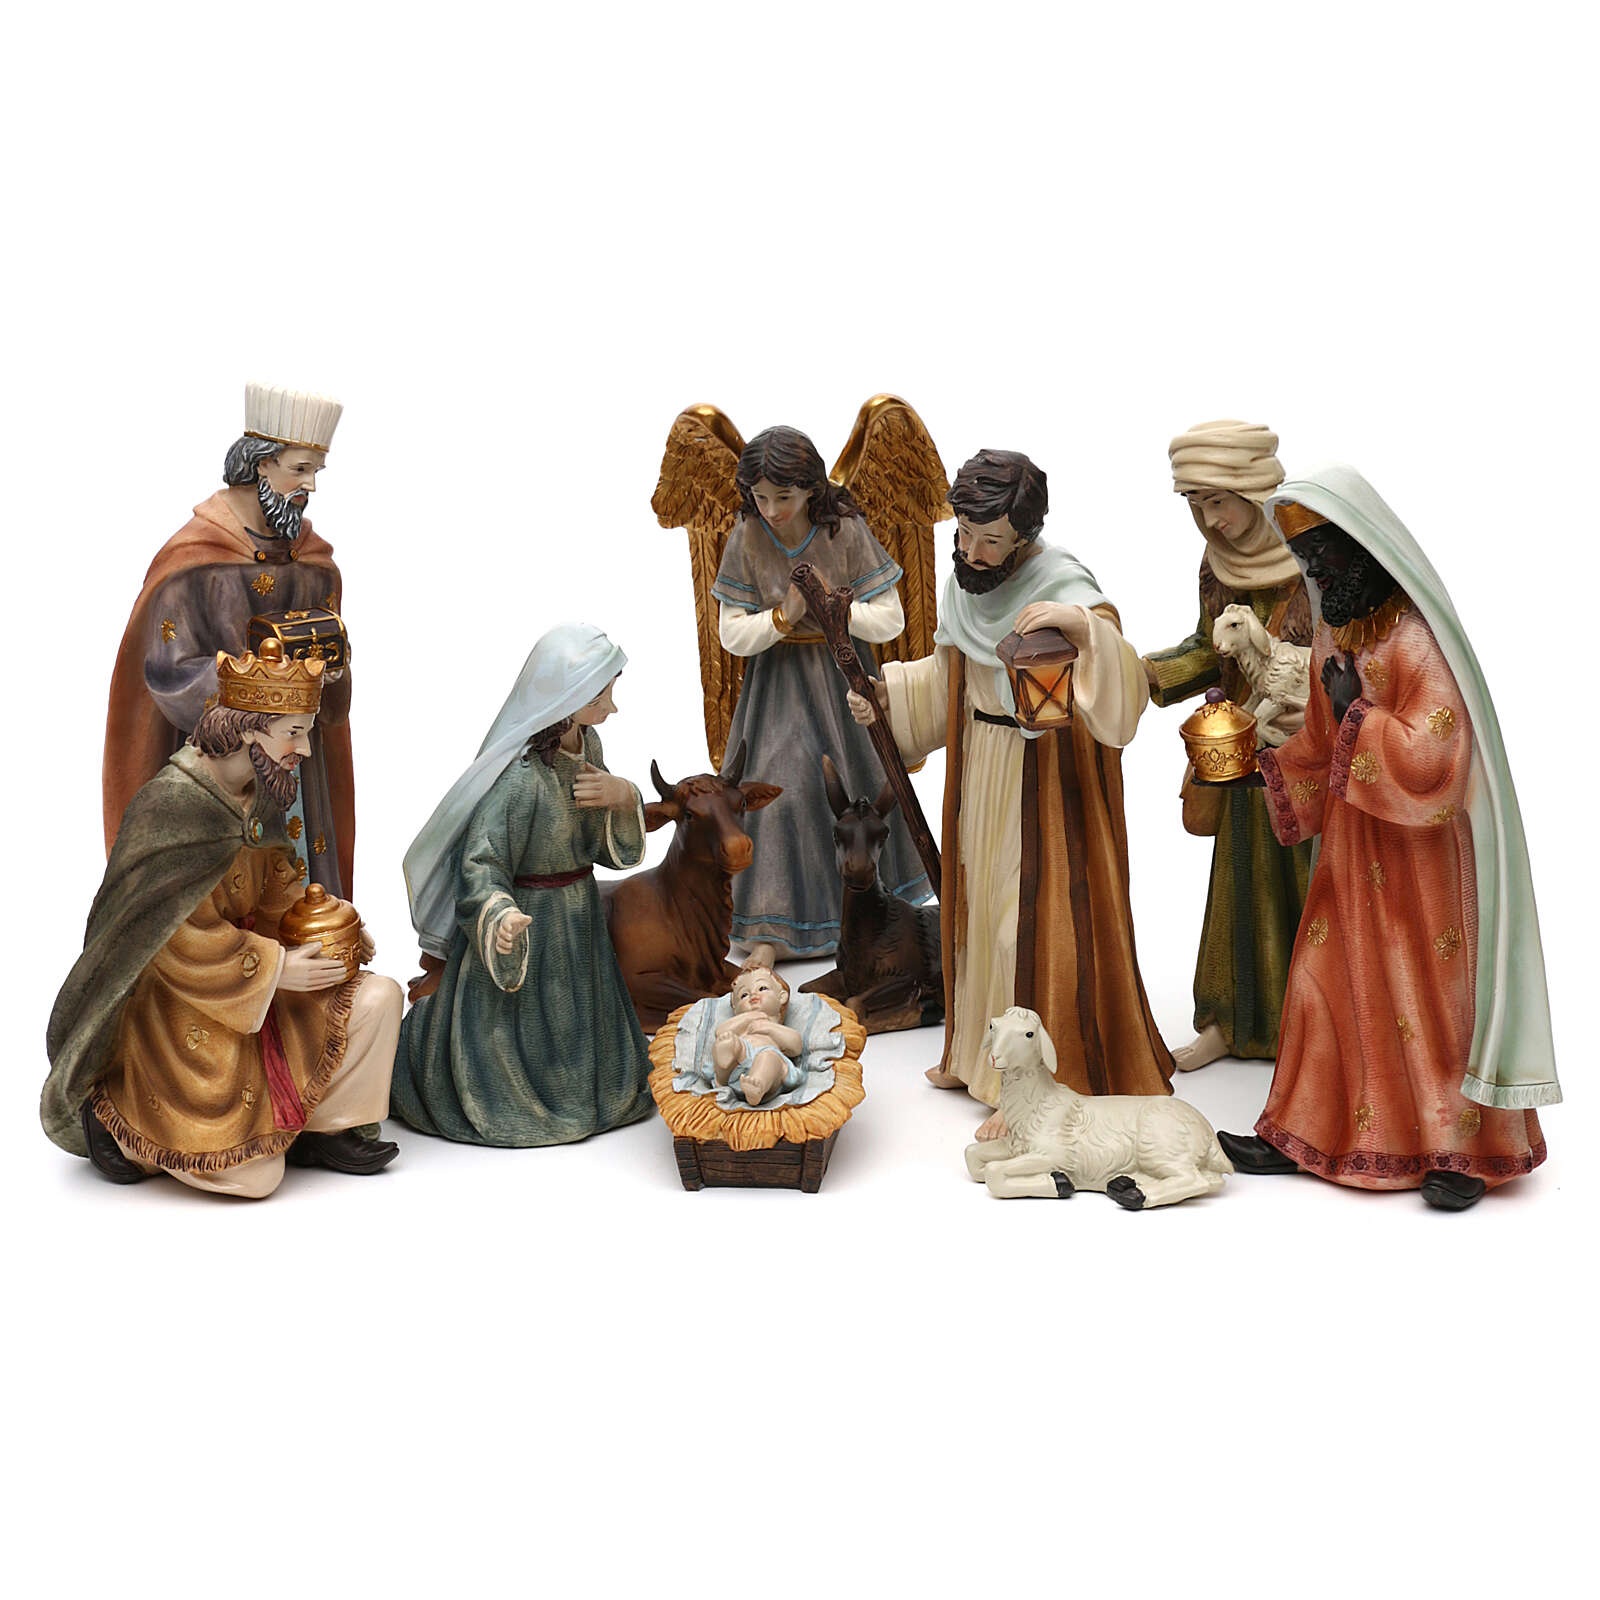 Full nativity set Orient style, in colored resin 25 cm 4